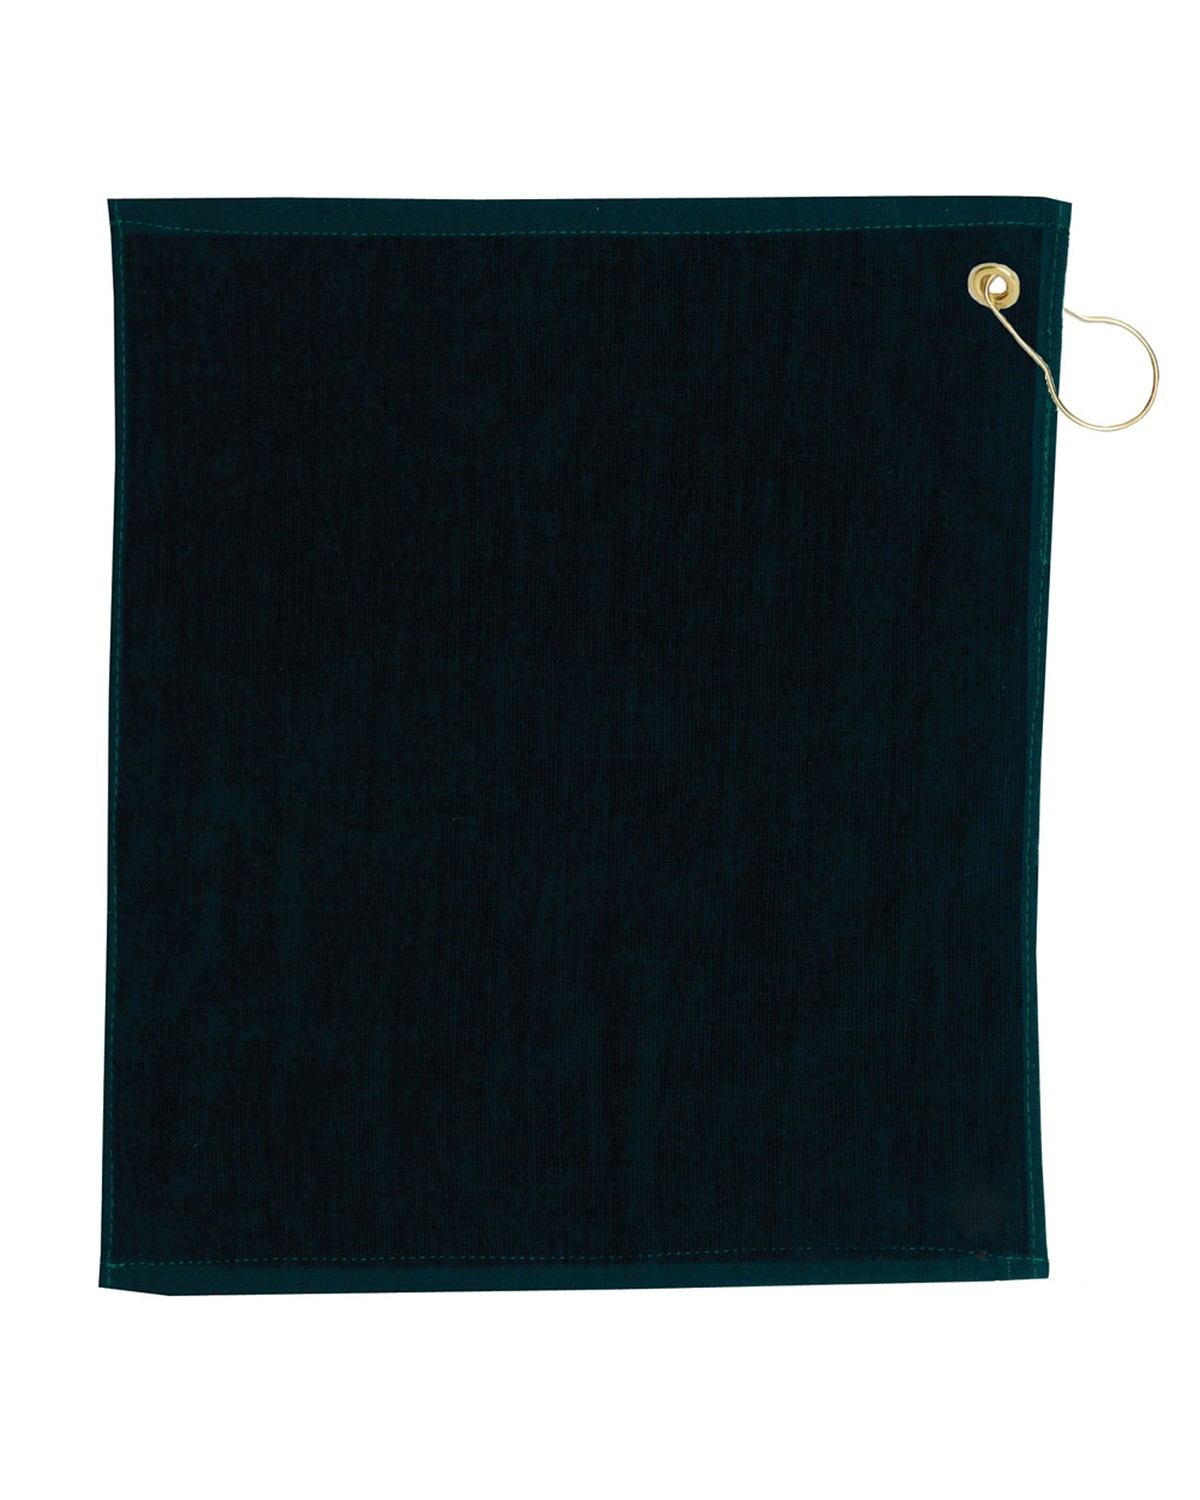 TRU18CG Pro Towels HUNTER GREEN